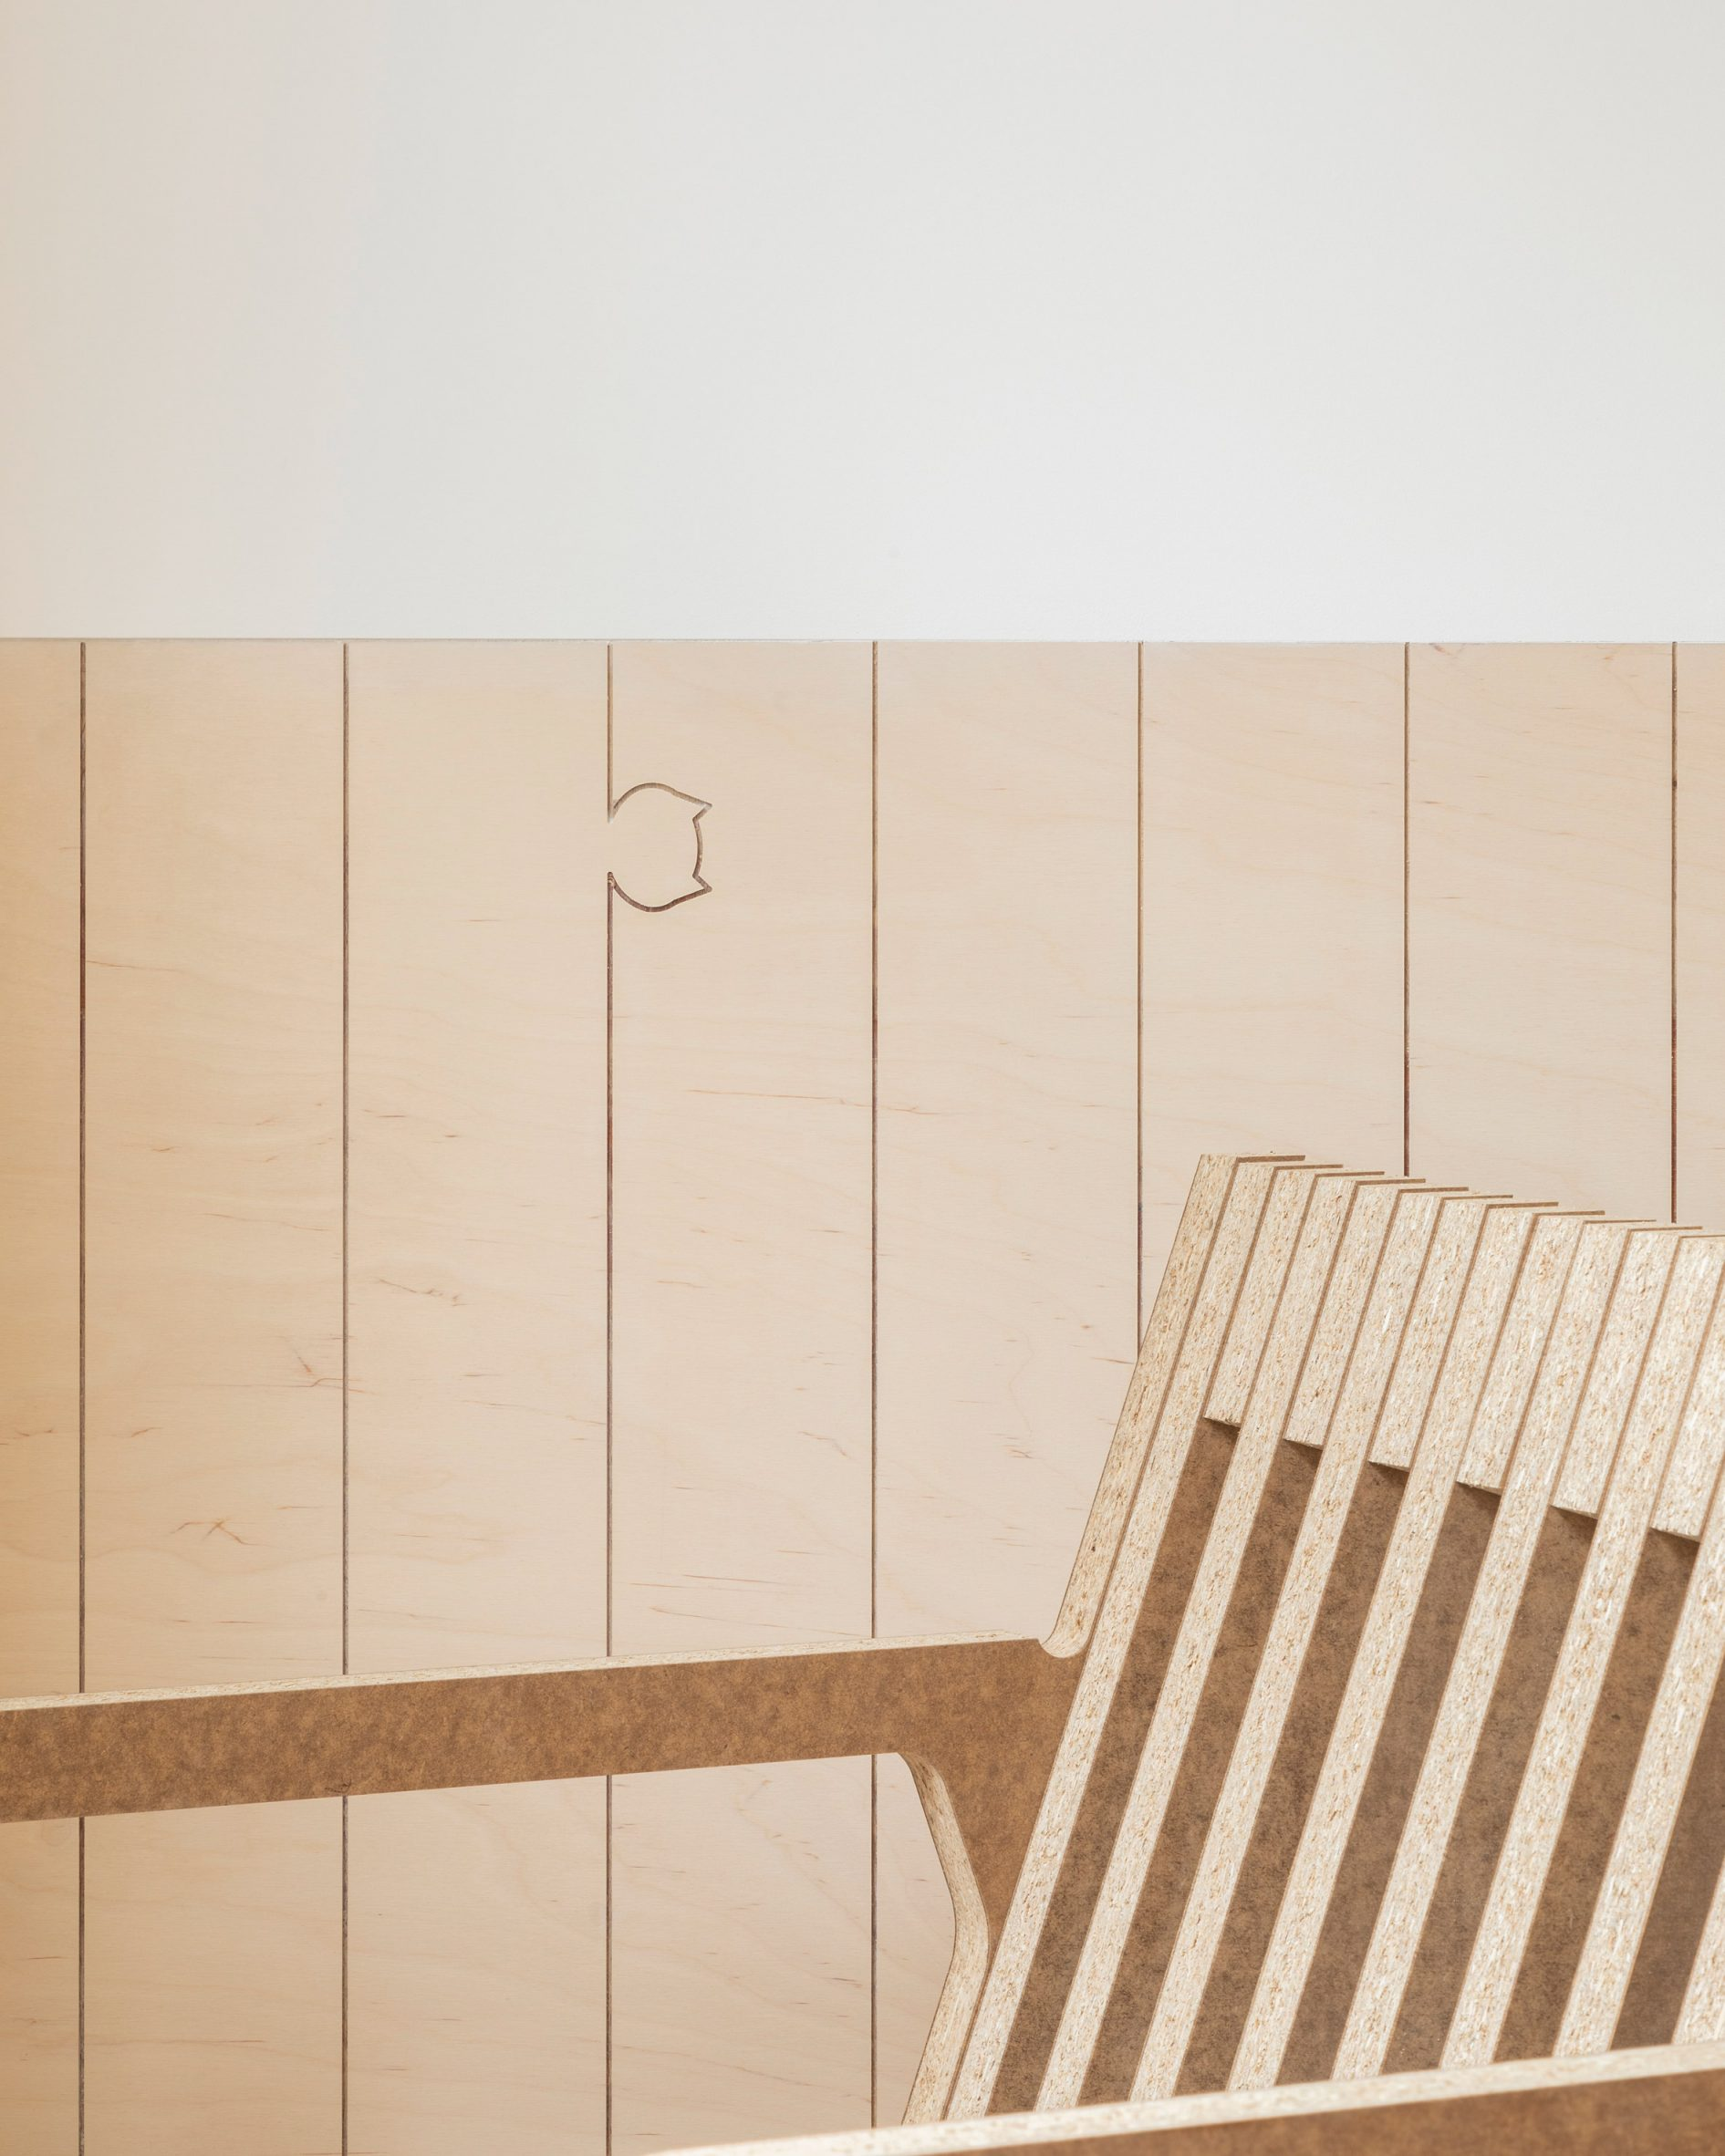 Wall panelling in The Queen of Catford by Tsuruta Architects